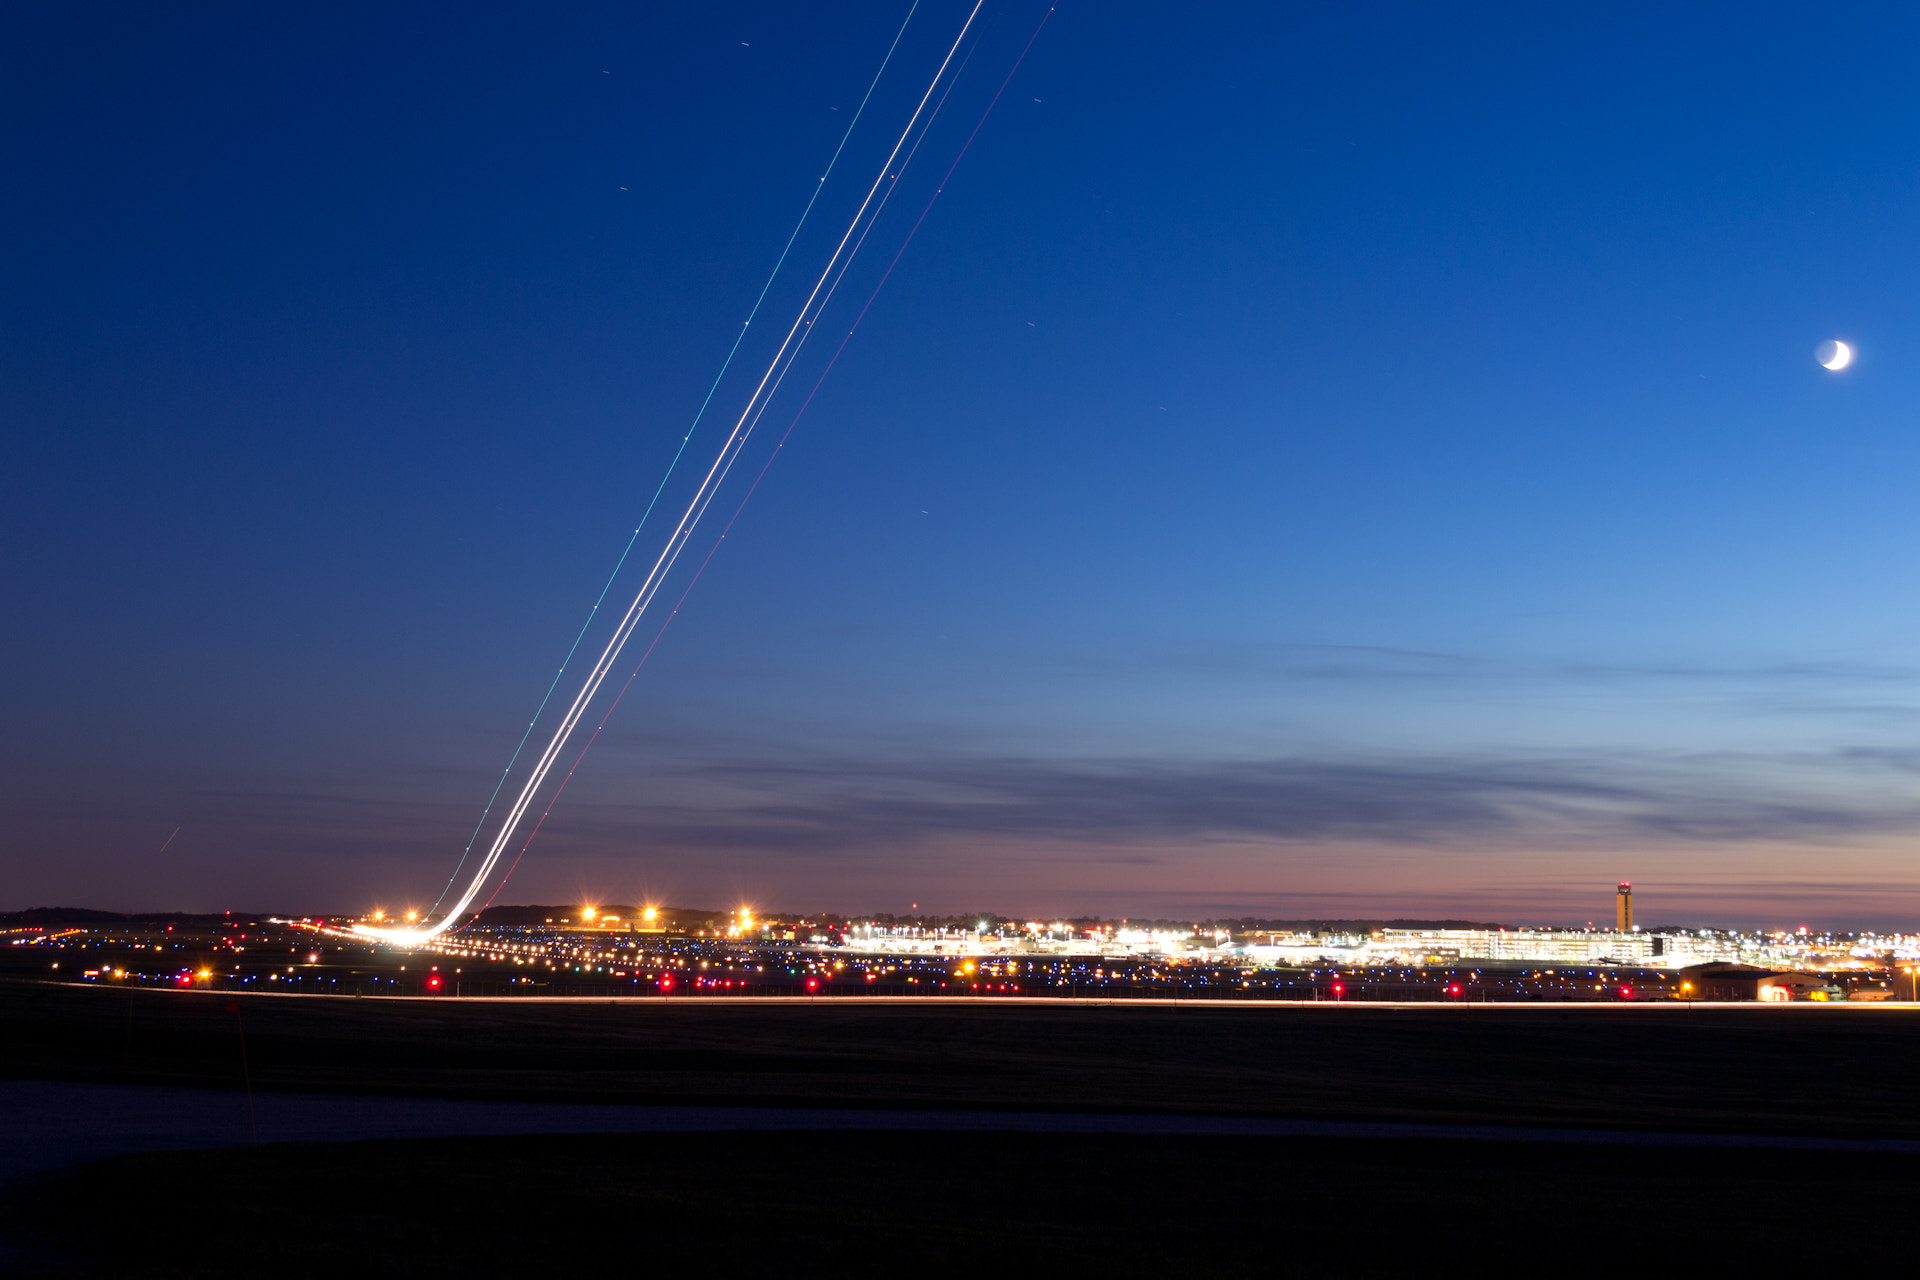 Photograph Airplane Light Trails 2 by Randy Scherkenbach on 500px